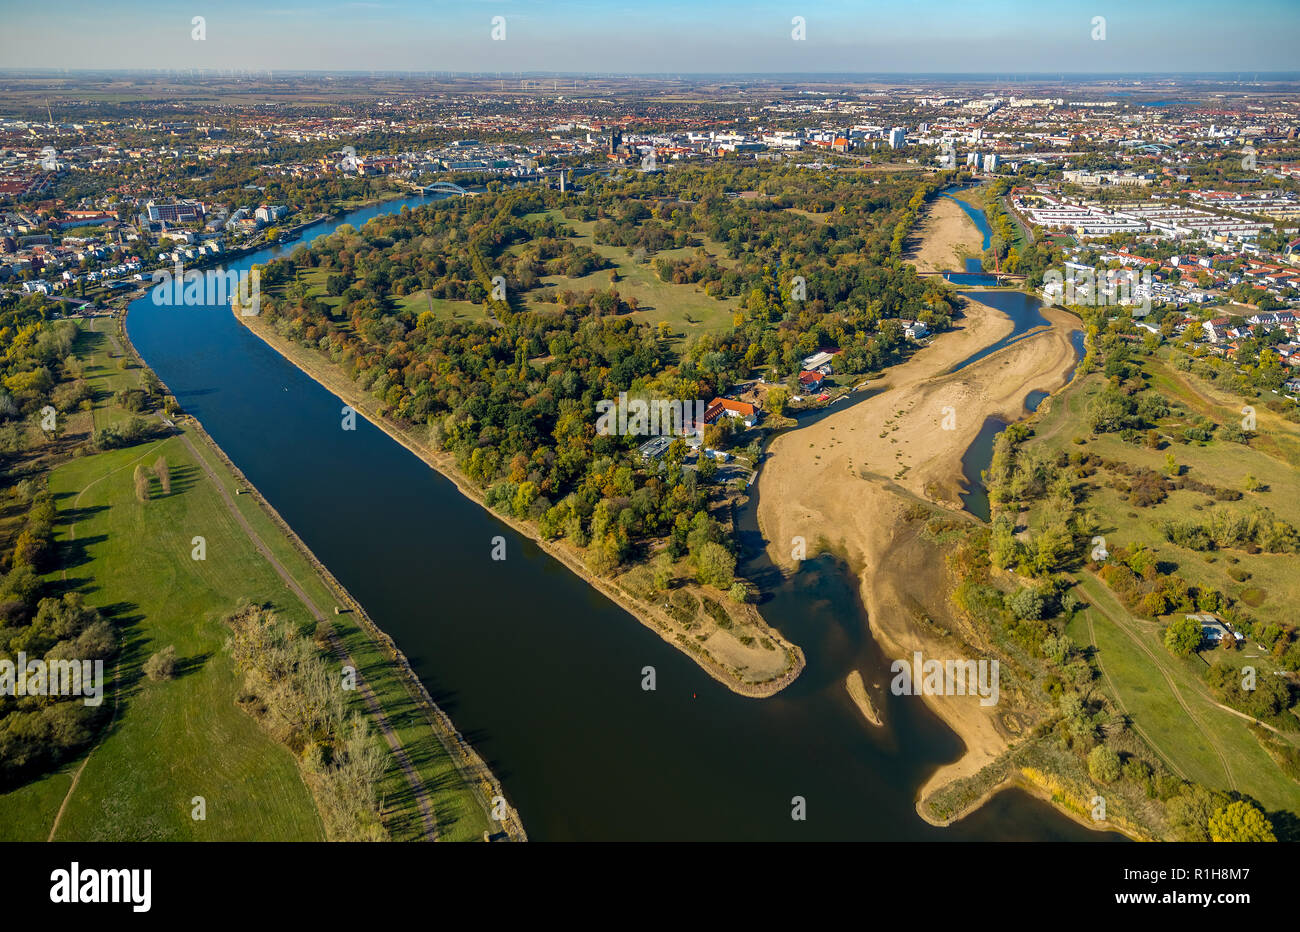 Rivers Elbe and Alte Elbe at low tide, dry branch, water shortage, Magdeburg, Saxony-Anhalt, Germany - Stock Image